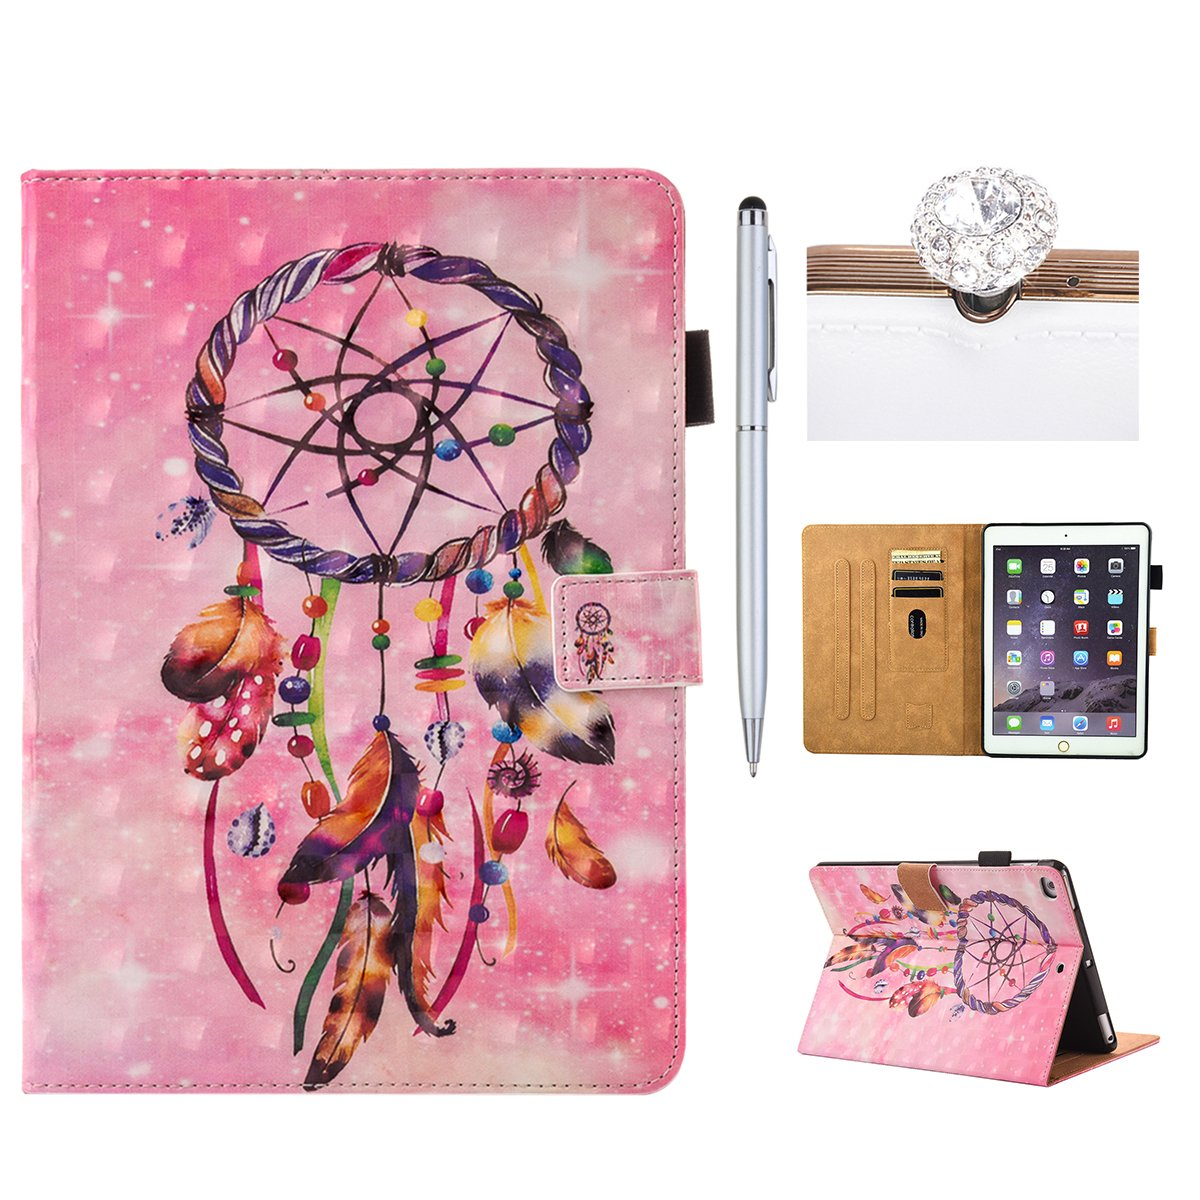 Felfy iPad Air/iPad Air 2 Case Leather, Cover for iPad 5/iPad 6(9.7 2017),Premium Leather Ultra Thin Lightweight 3D Colorful Cute Cartoon Pattern Series Cover Case, Wallet Flip Cover with Magnetic Closure Stand Function Kickstand Folding Shell Card Slots H